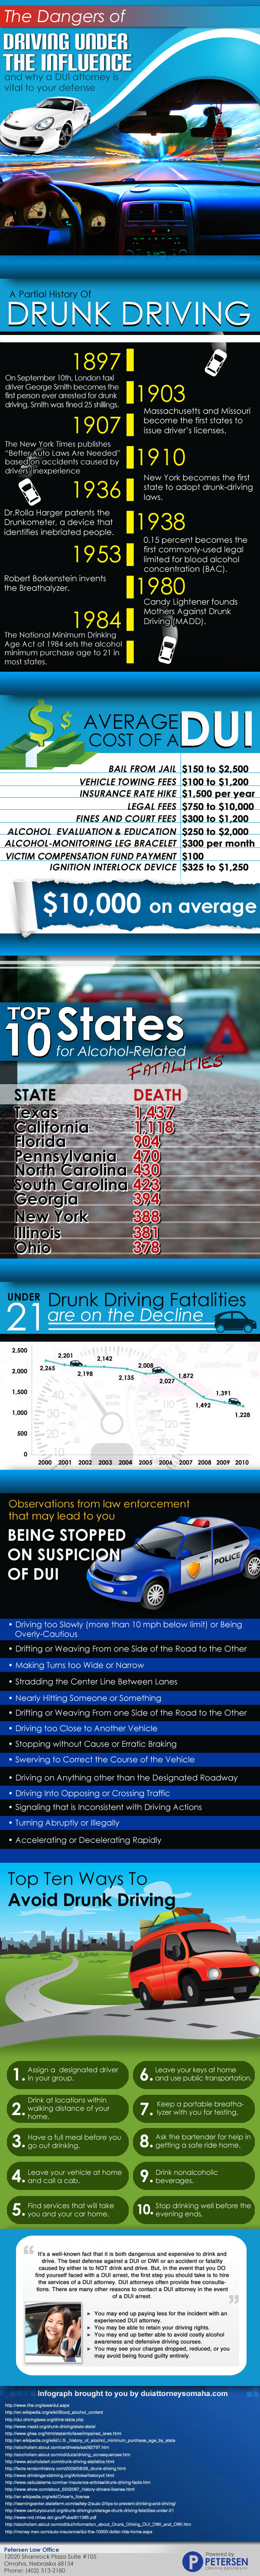 Infographic: The Dangers of Driving Under the Influence #infographic